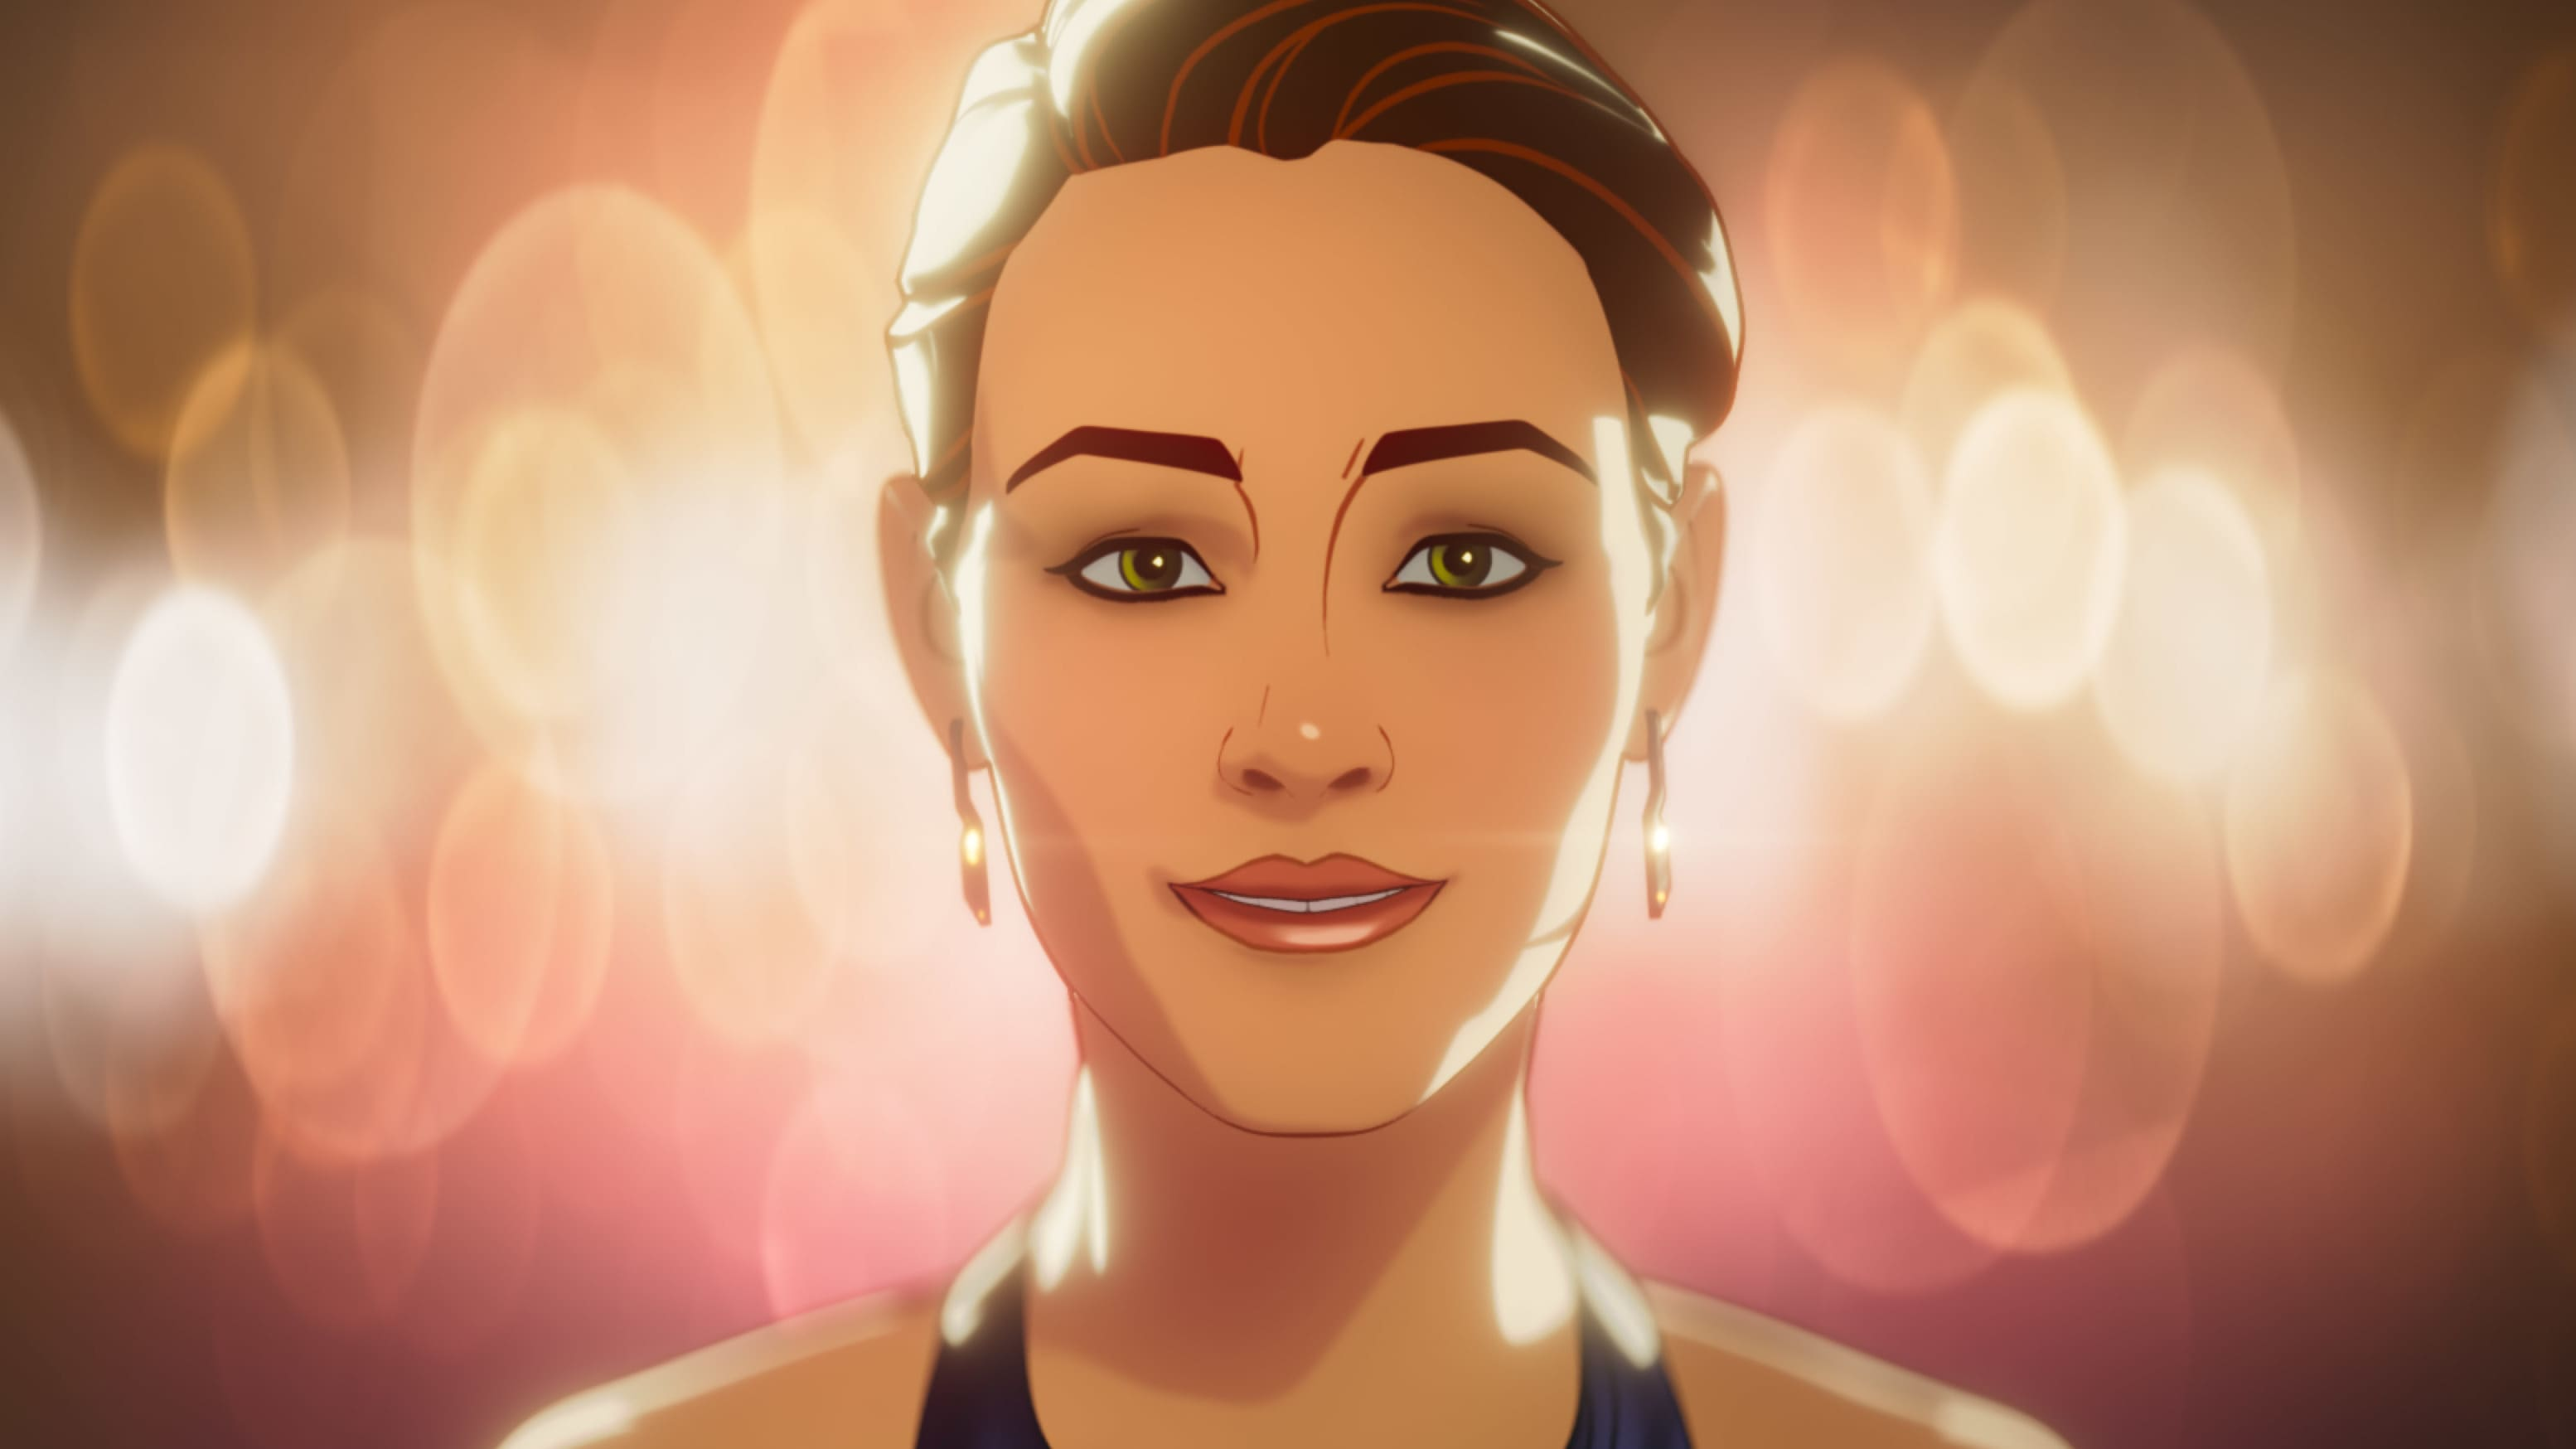 Christine Palmer in Marvel Studios' WHAT IF…? exclusively on Disney+. ©Marvel Studios 2021. All Rights Reserved.